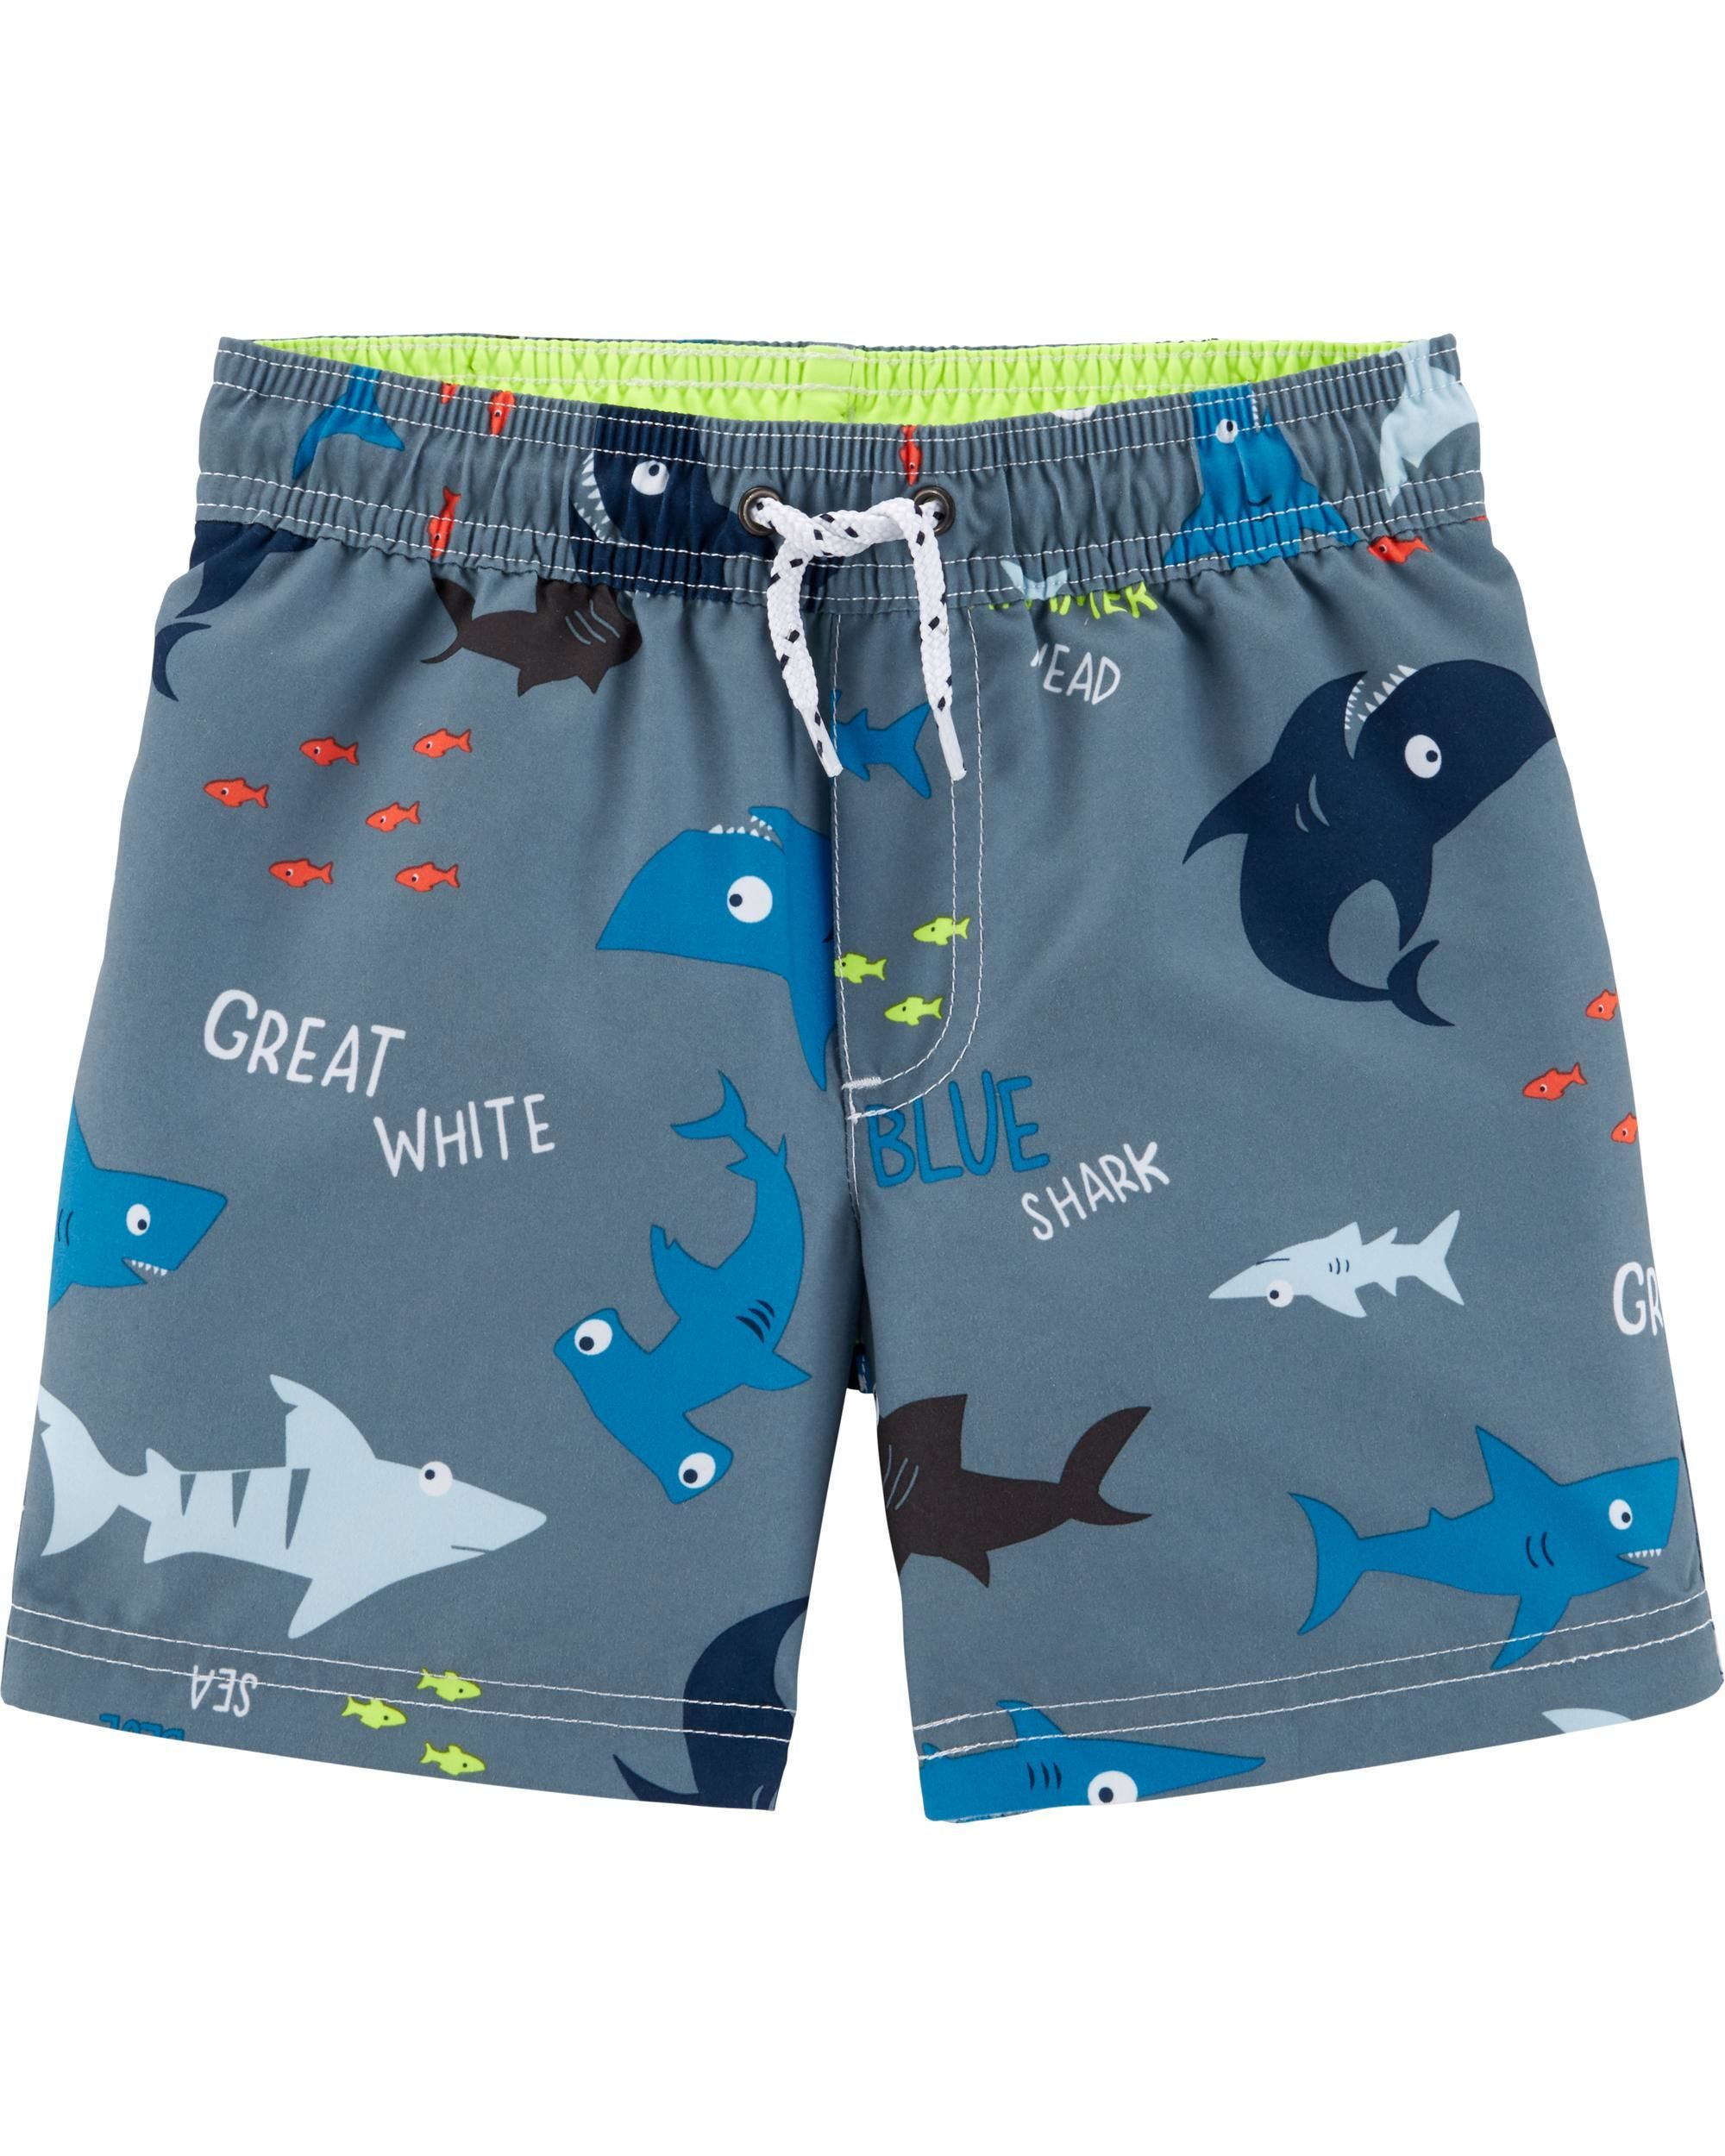 6da8a36a6f Shark Swim Trunks | SWIM | Swim trunks, Baby boy swimwear, Baby swimsuit